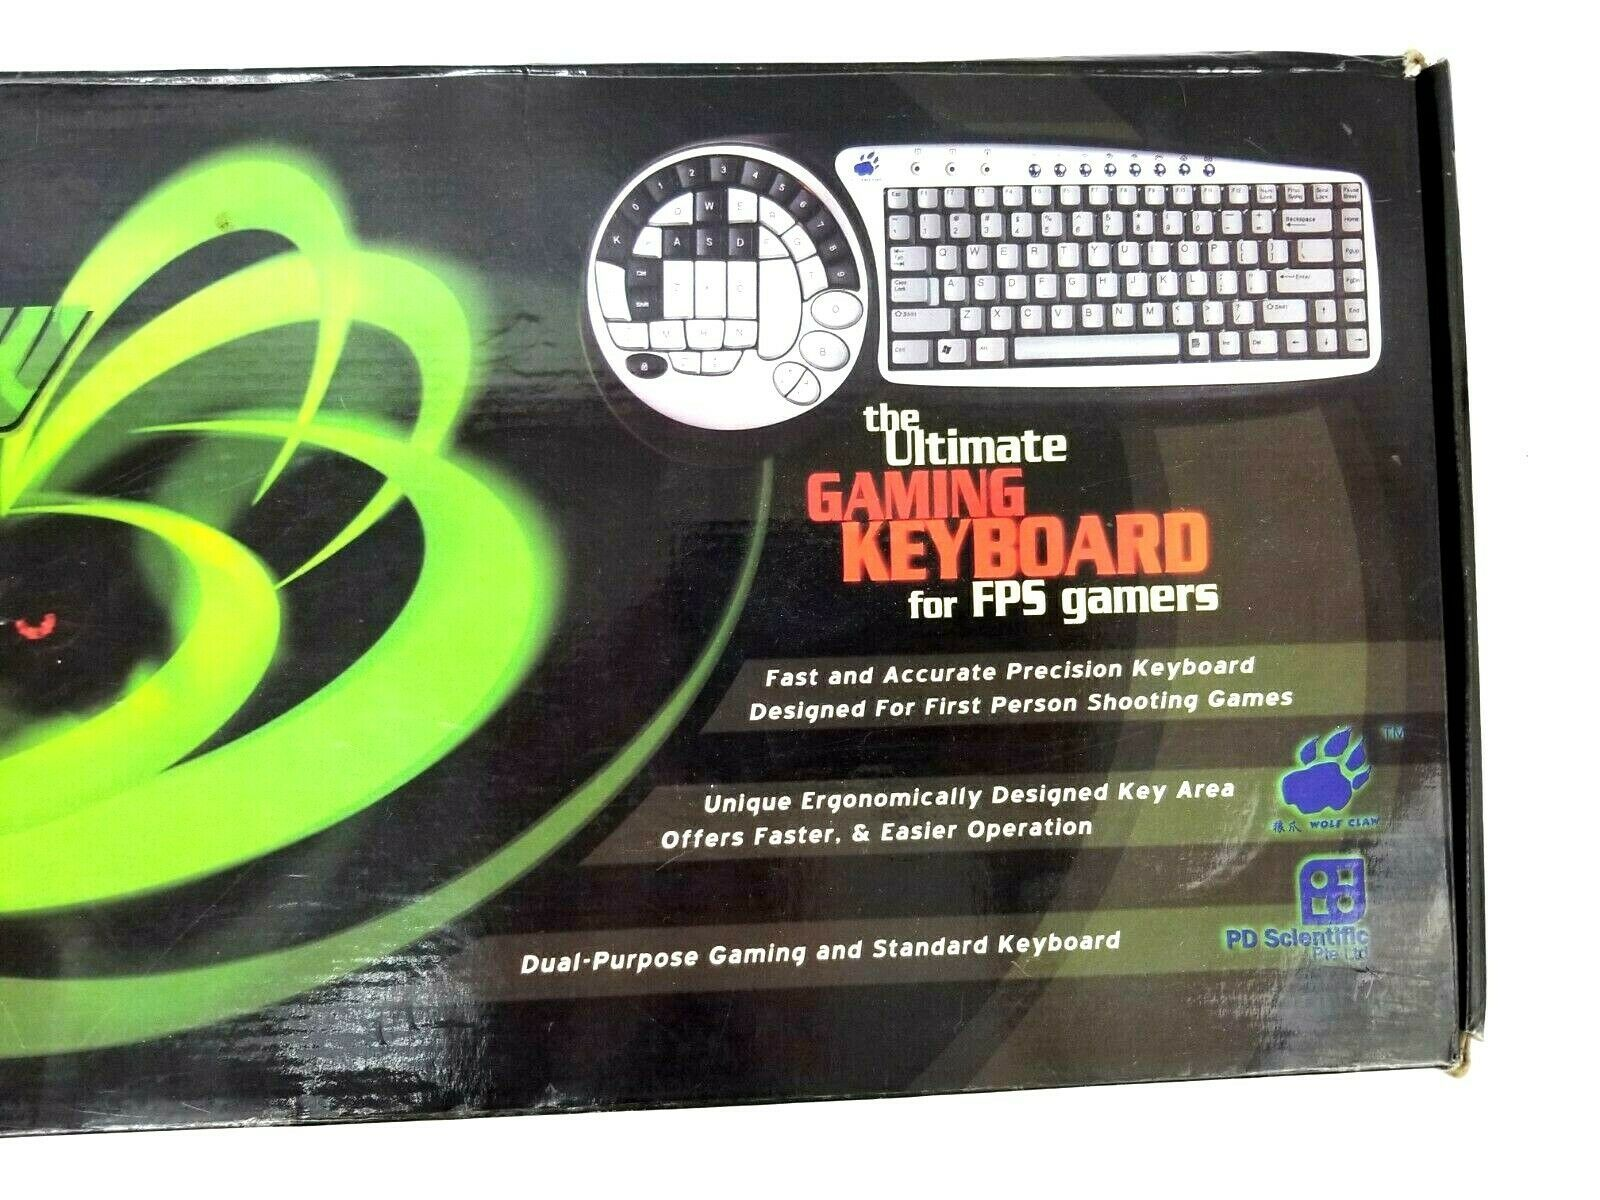 Wolf Claw II The Ultimate Gaming Keyboard for FPS Gamers SK-6745 - New Open Box image 5